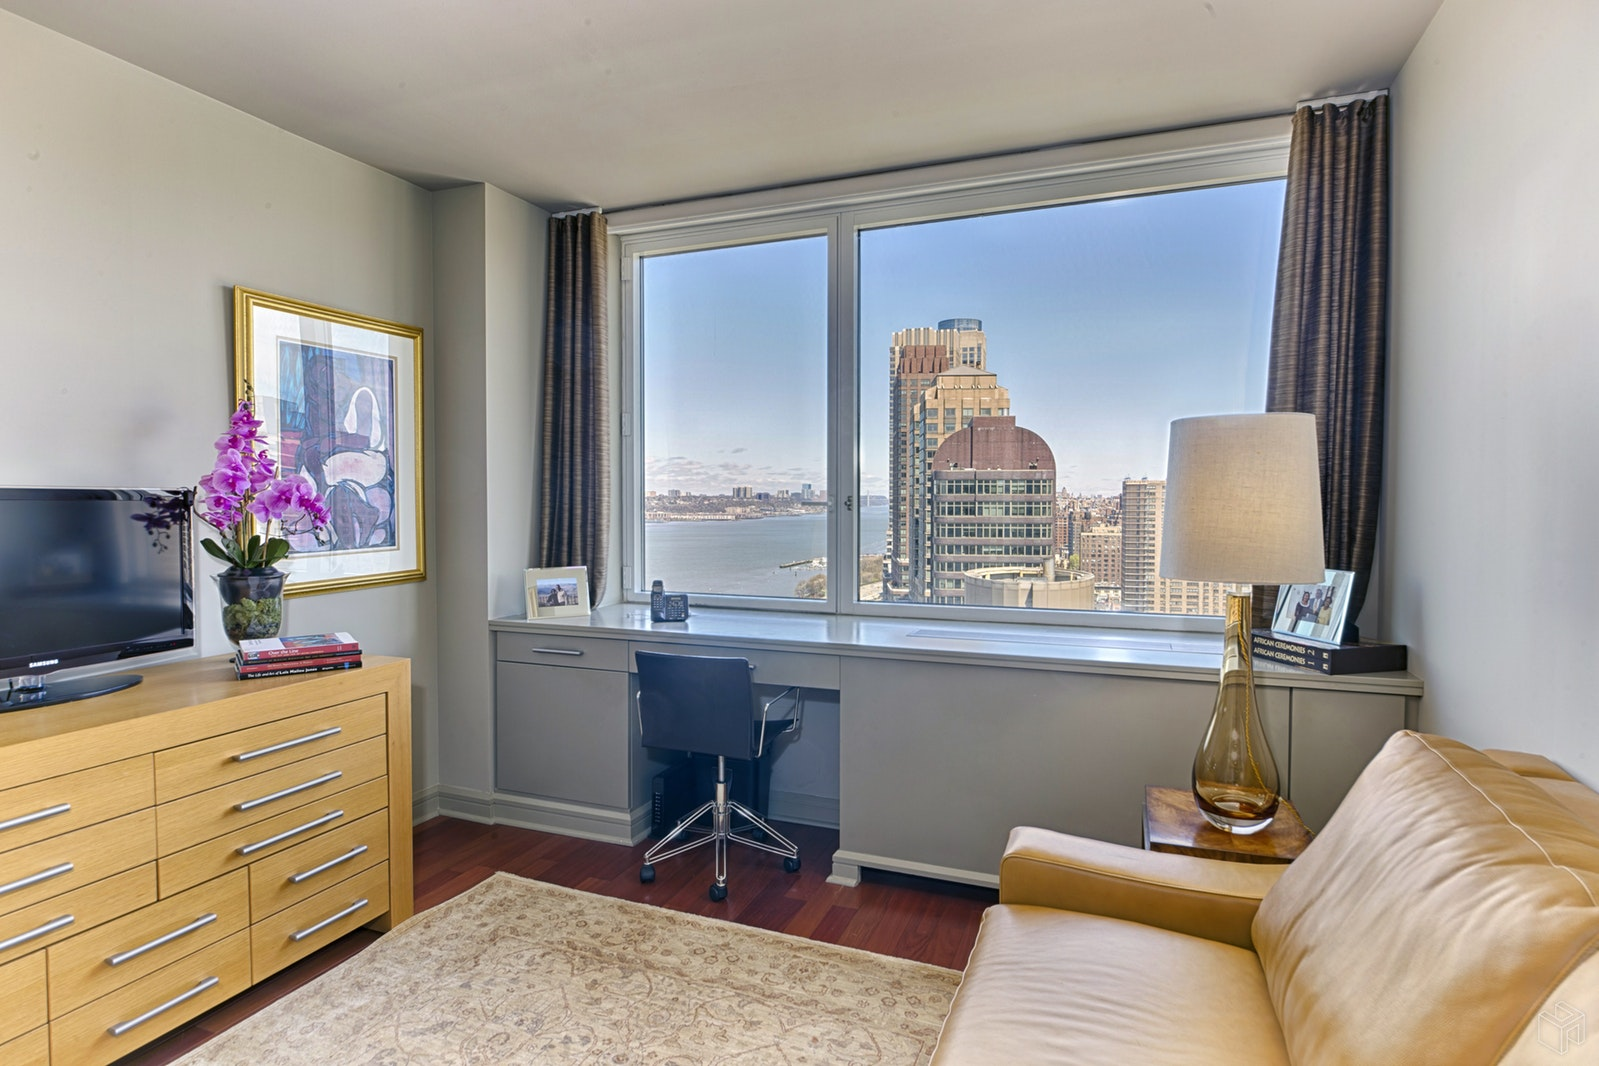 100 Riverside Boulevard  27a, Upper West Side, NYC, 10069, $2,350,000, Property For Sale, ID# 18438281, Halstead